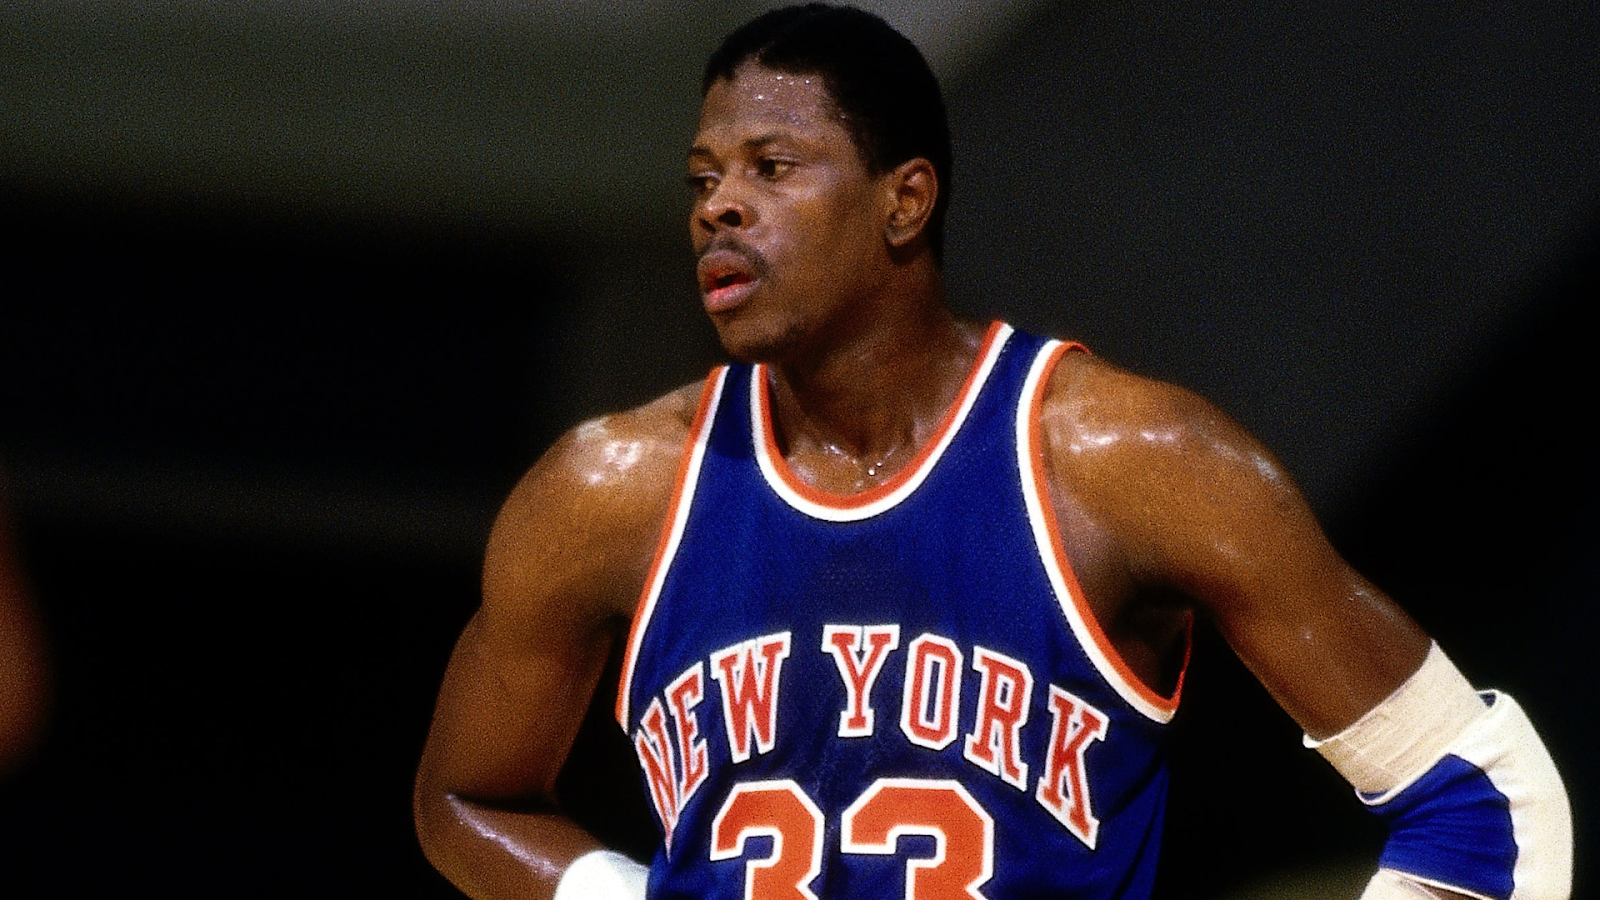 The 15 Biggest and Saddest Cases of Racism in Sports